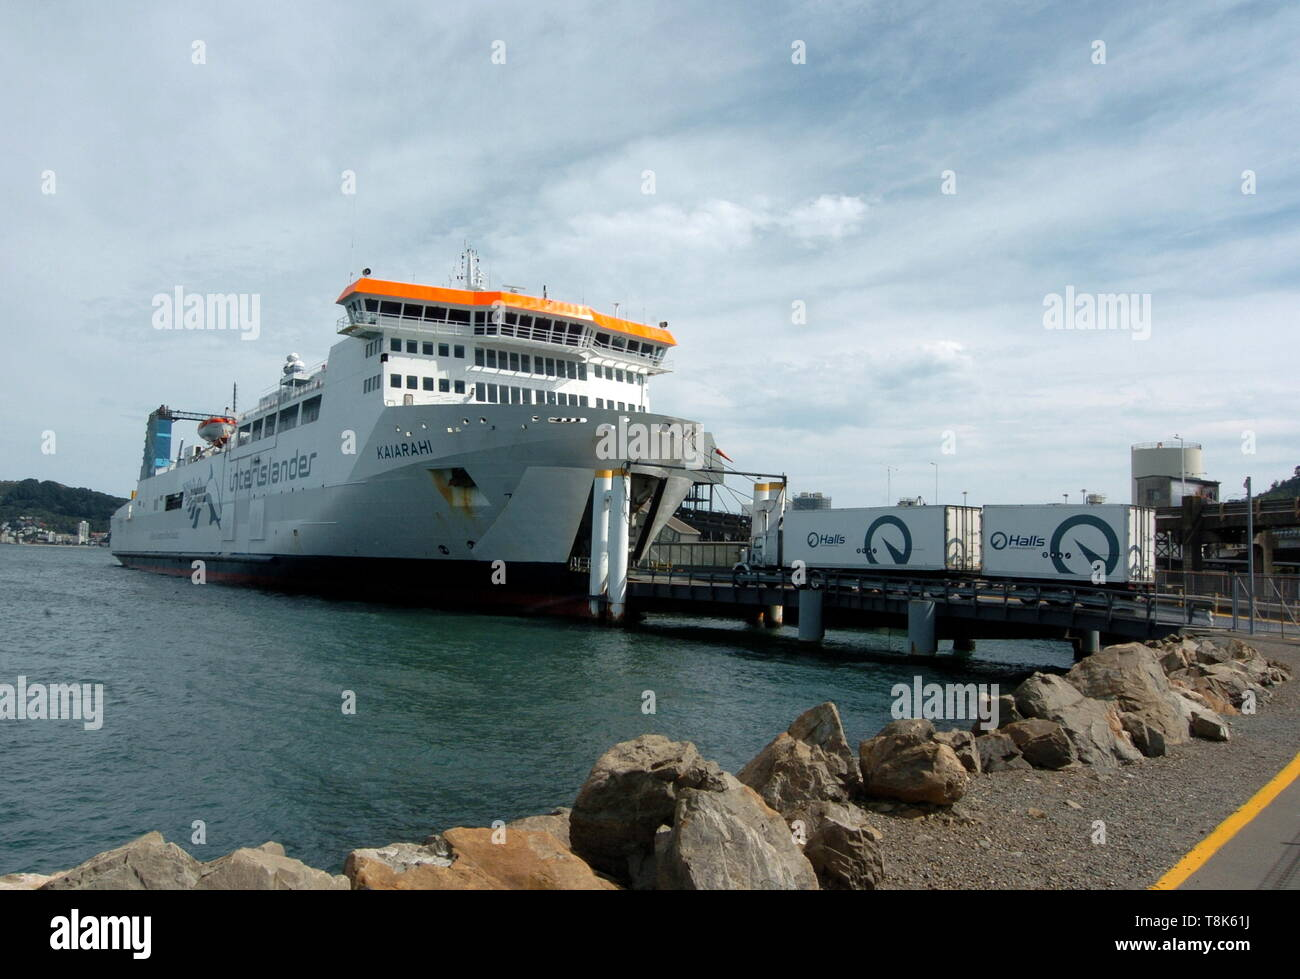 AJAXNETPHOTO. FEBRUARY, 2019. WELLINGTON, NEW ZEALAND. - THE RO-RO INTERISLANDER FERRY KAIARAHI LOADING IN WELLINGTON BEFORE DEPARTING FOR NELSON, SOUTH ISLAND, NZ.